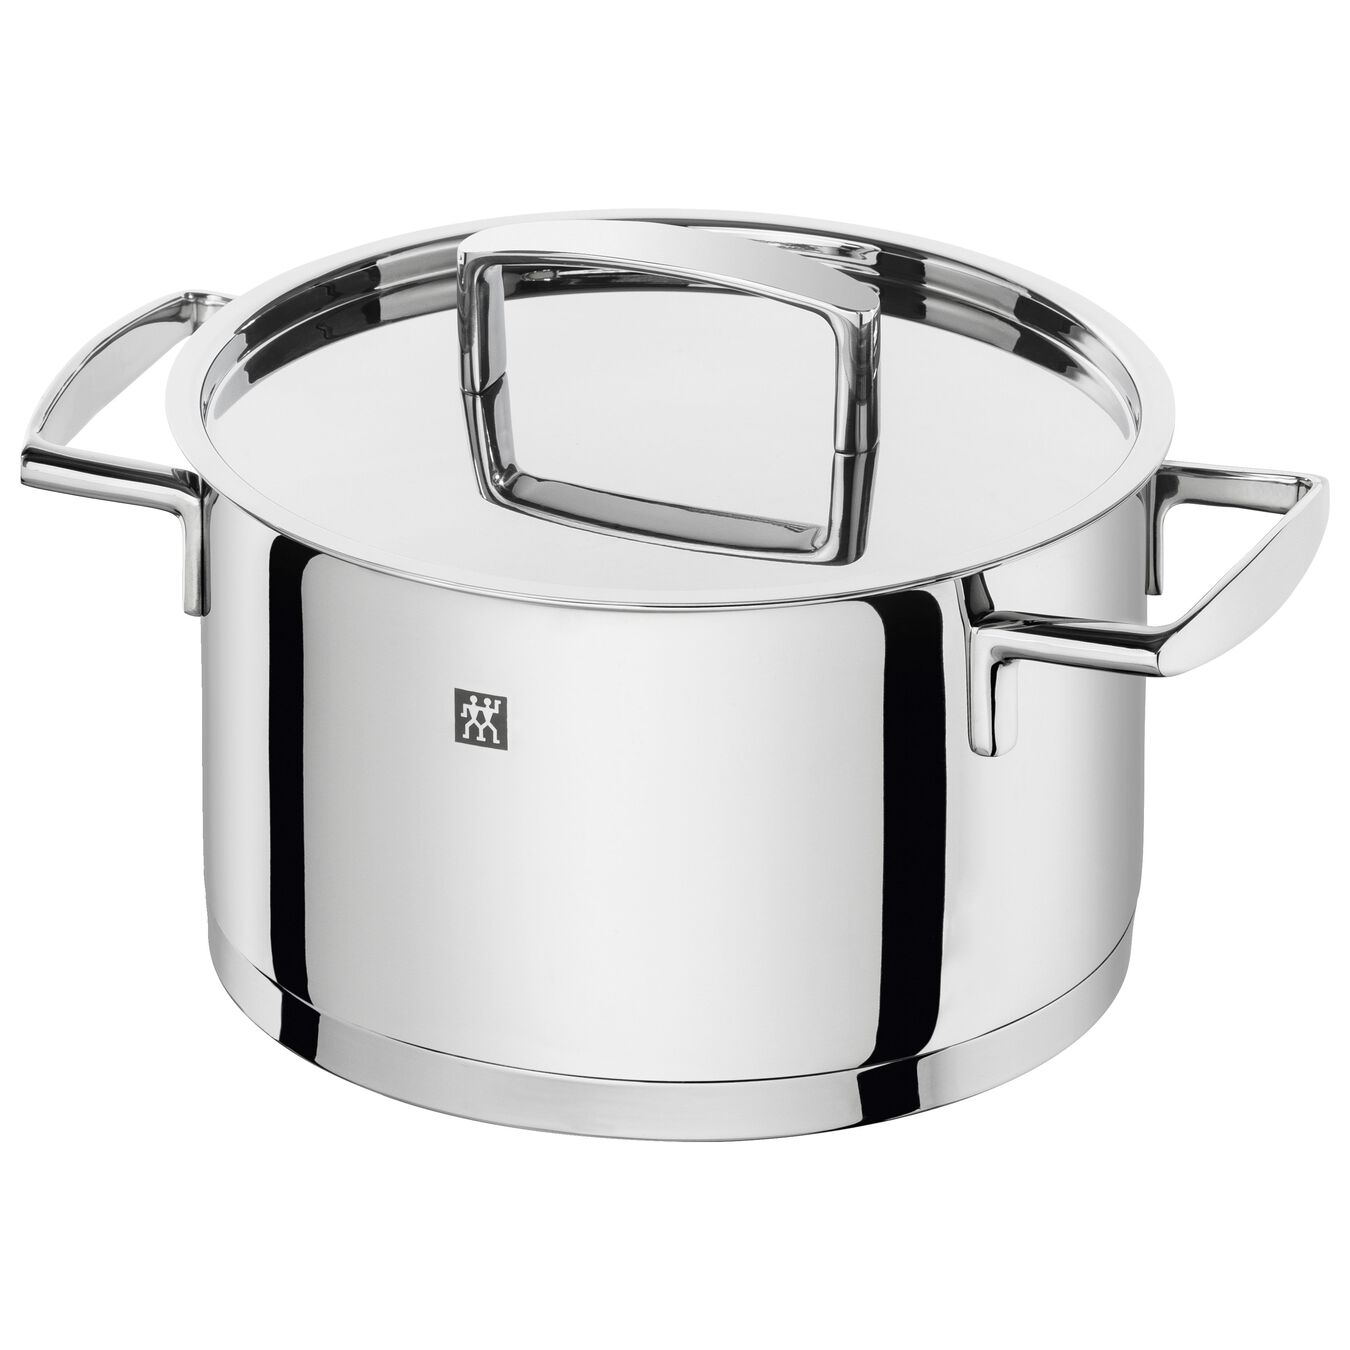 Ensemble de casseroles 5-pcs, Inox 18/10,,large 7